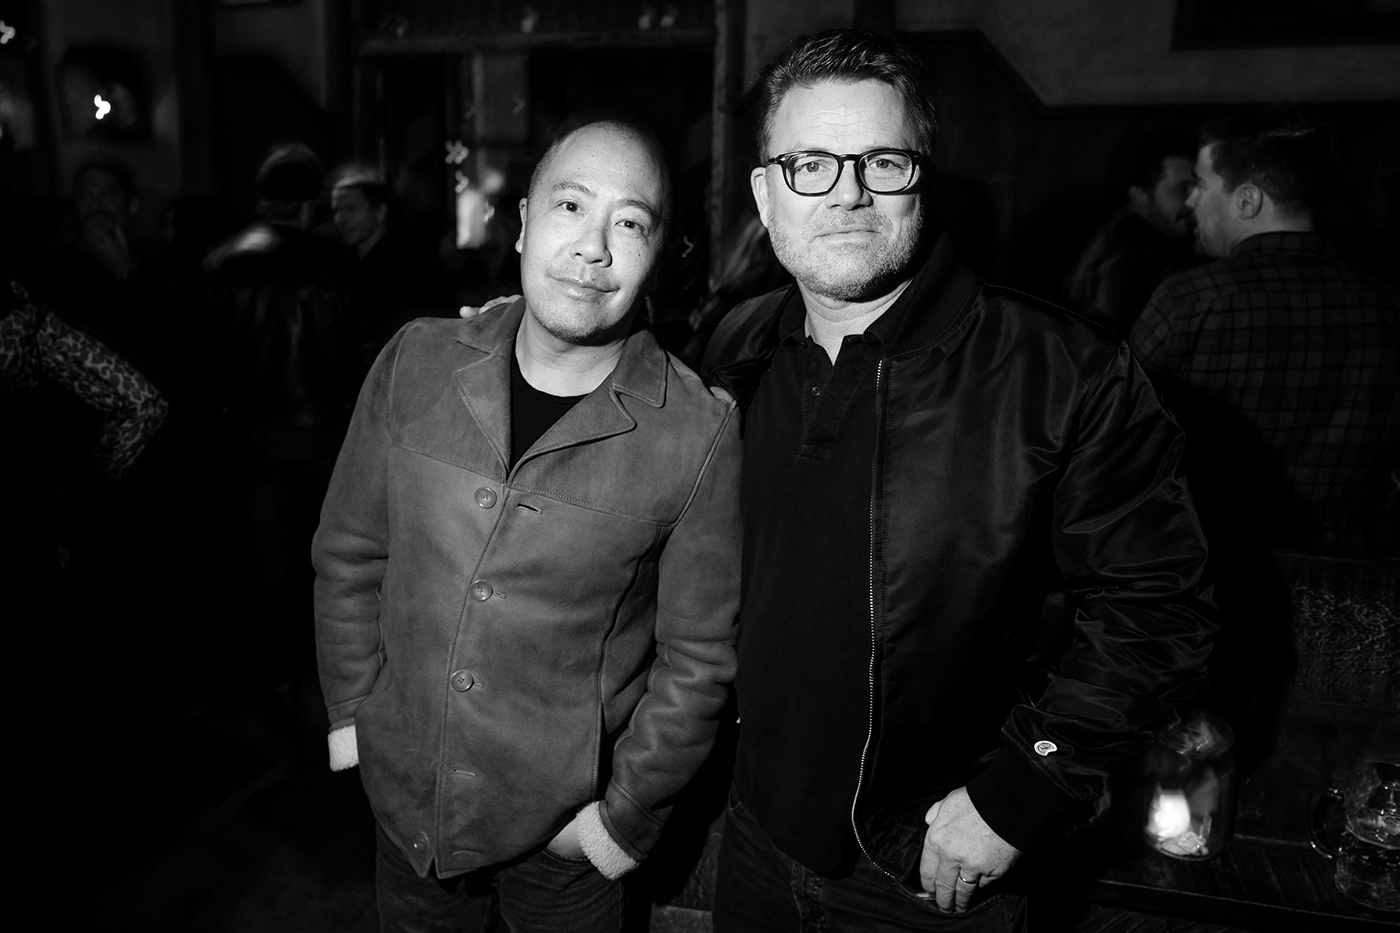 Derek Lam and Jan-Hendrik Schlottmann